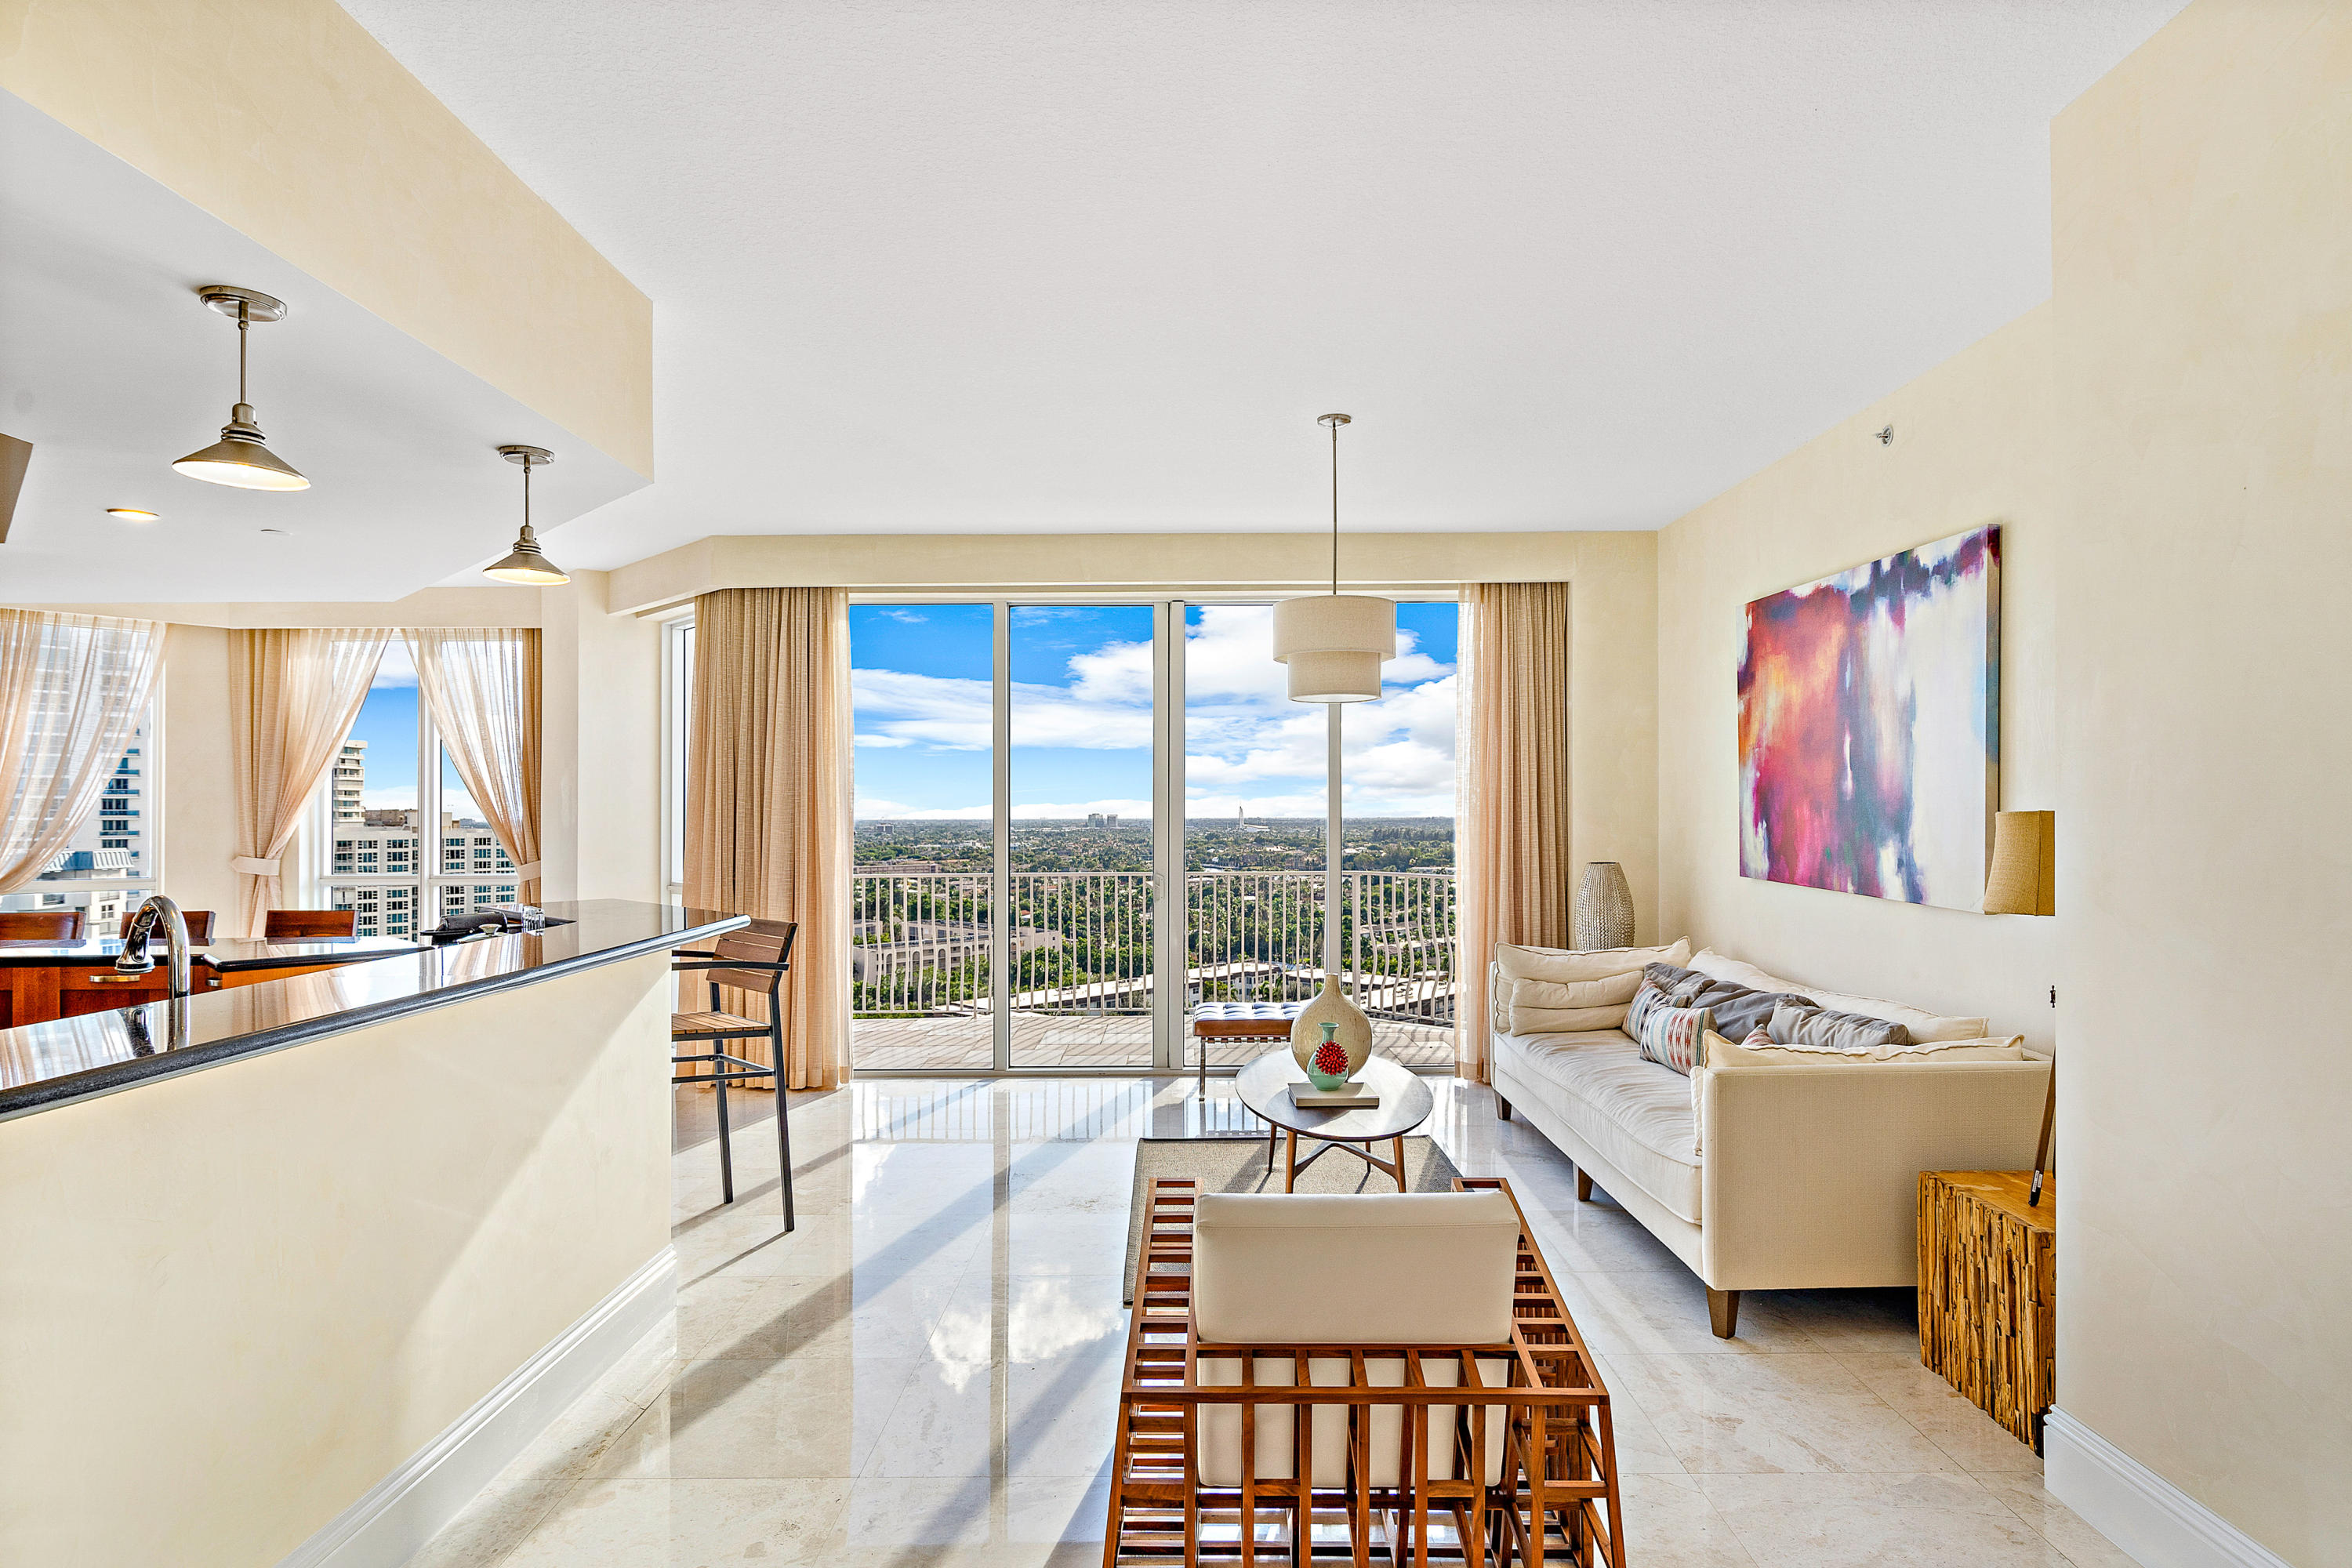 Europa By The Sea, 1460 S Ocean Unit 1601, Lauderdale By The Sea, Florida 33062